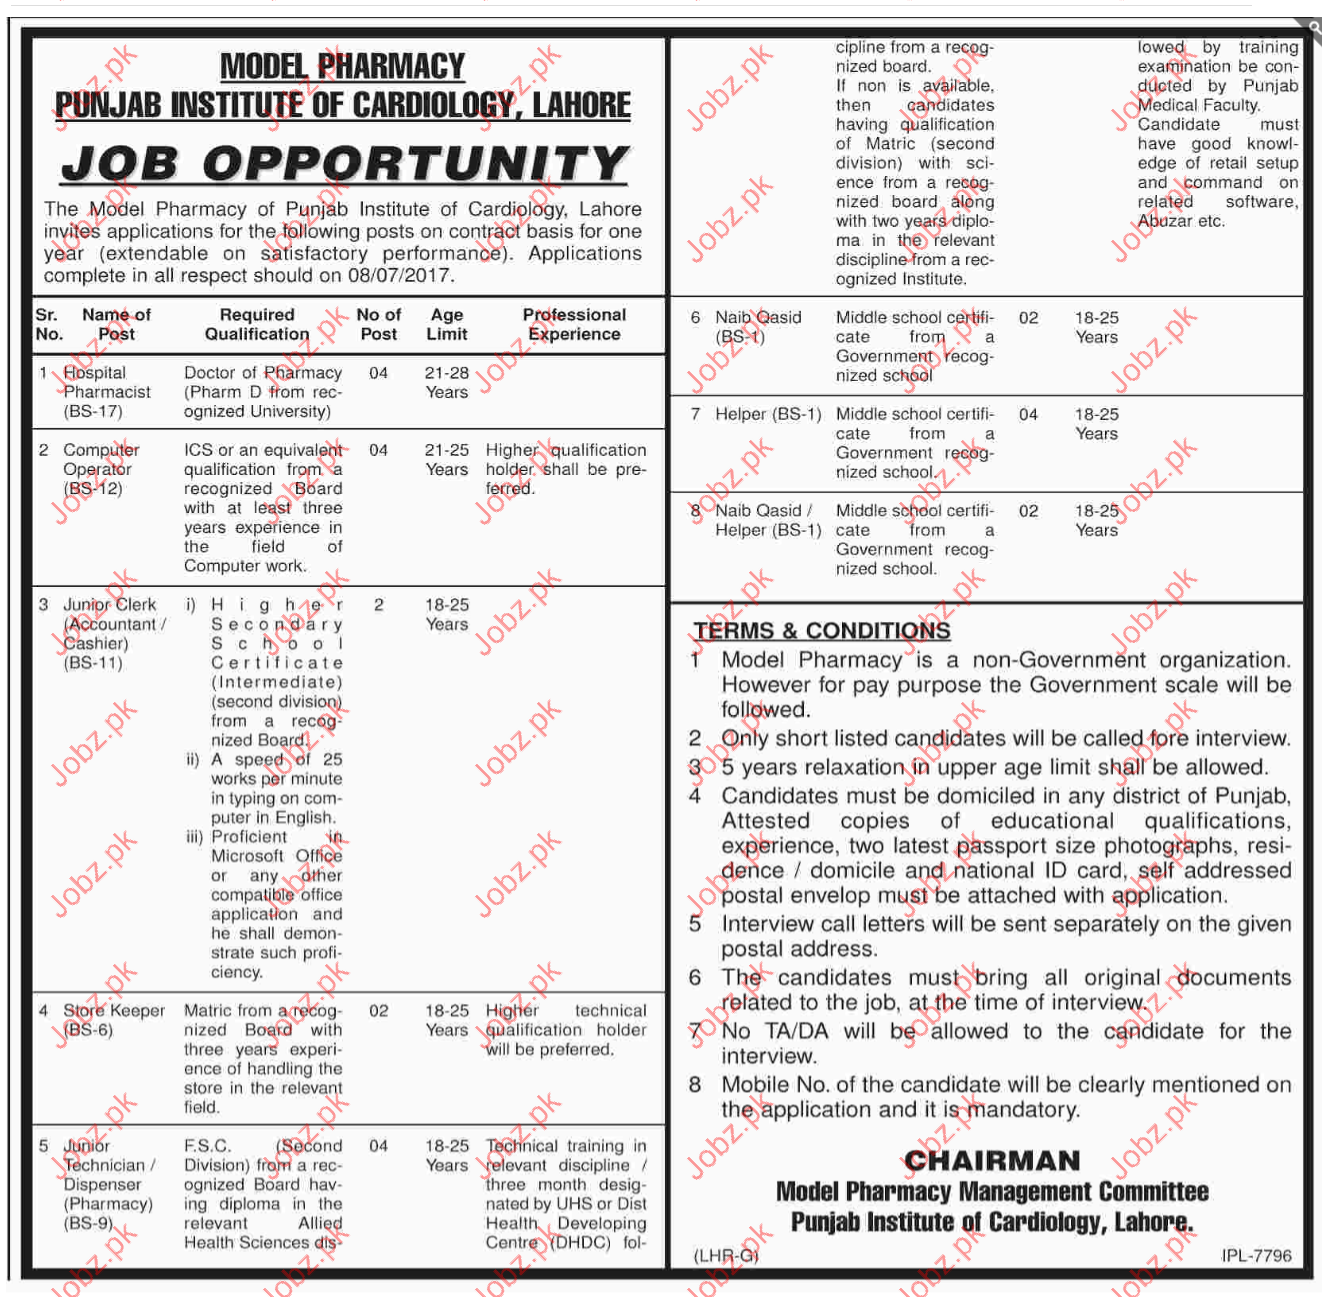 Model Pharmacy Jobs In Punjab Institute Of Cardiology